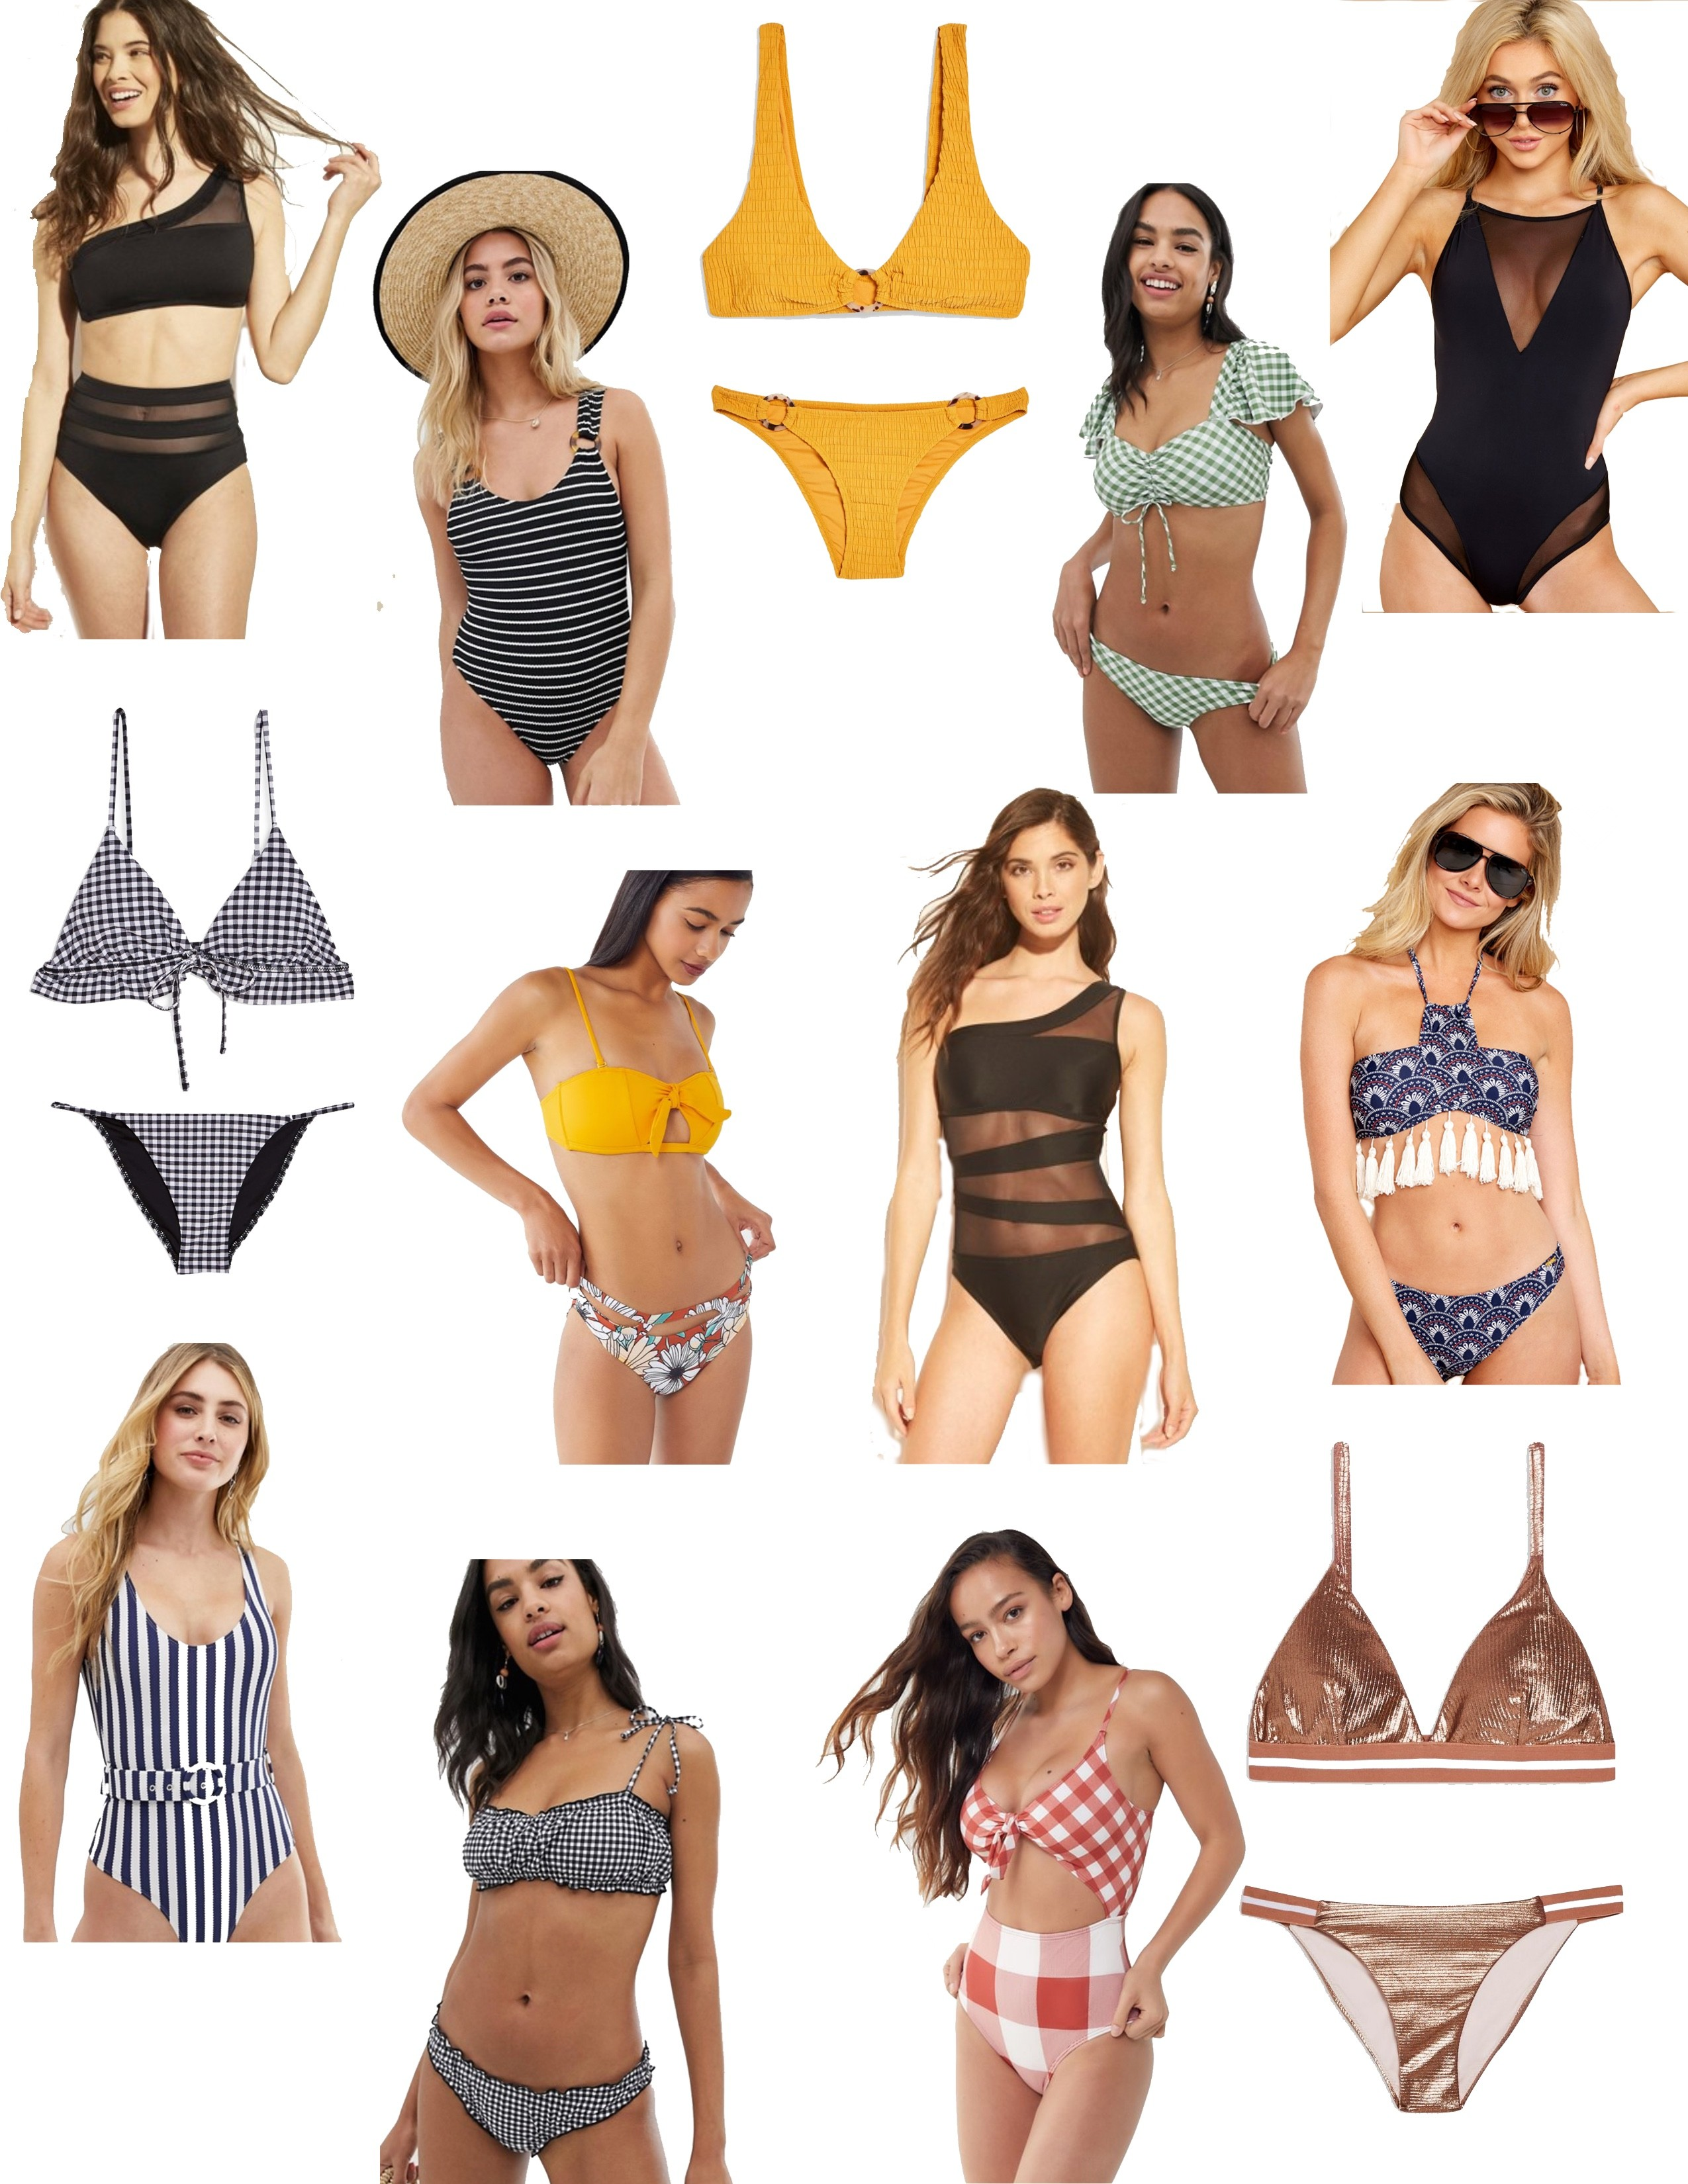 9d2c9895682 From the swimsuits pictured above, the only one I own is the black mesh one  shoulder one piece. I purchased a small and I can't wait to wear this  during my ...